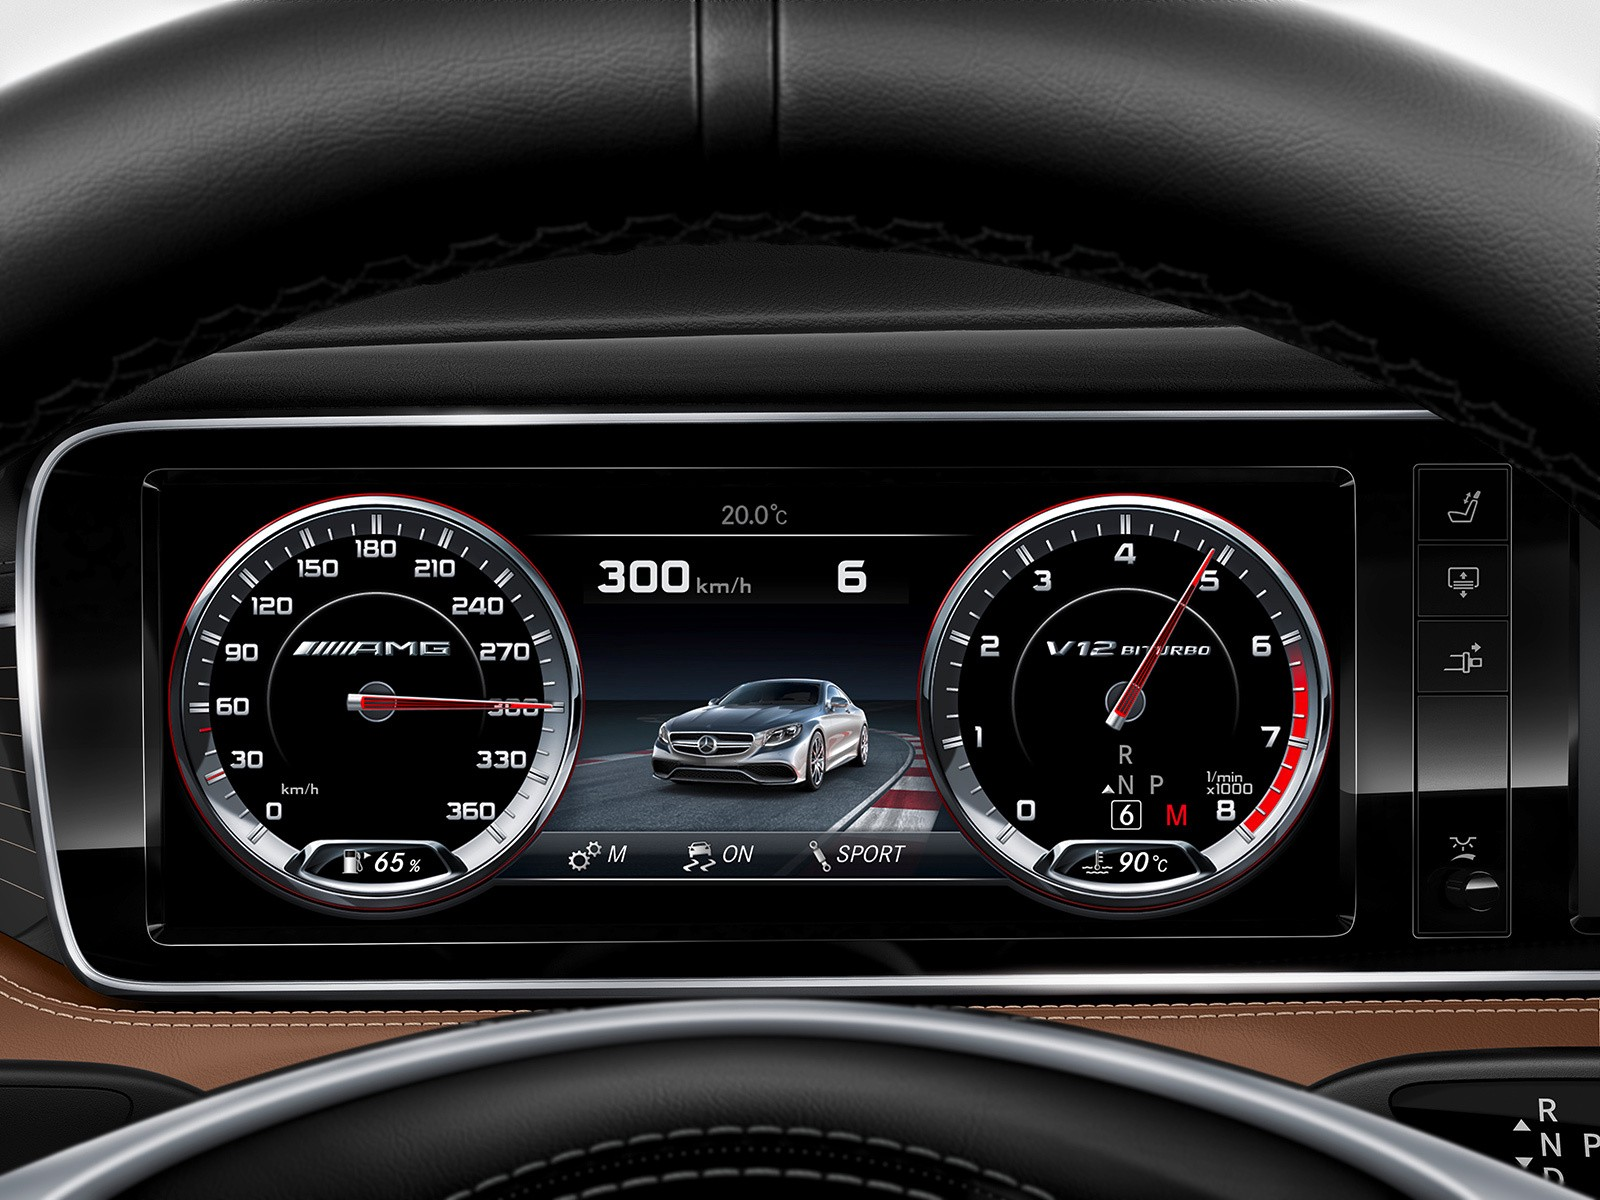 Car Dashboard Ui Collection Denys Nevozhai Medium Lexus Symbols Mercedes Benz S65 Amg Coupe 2014 Production